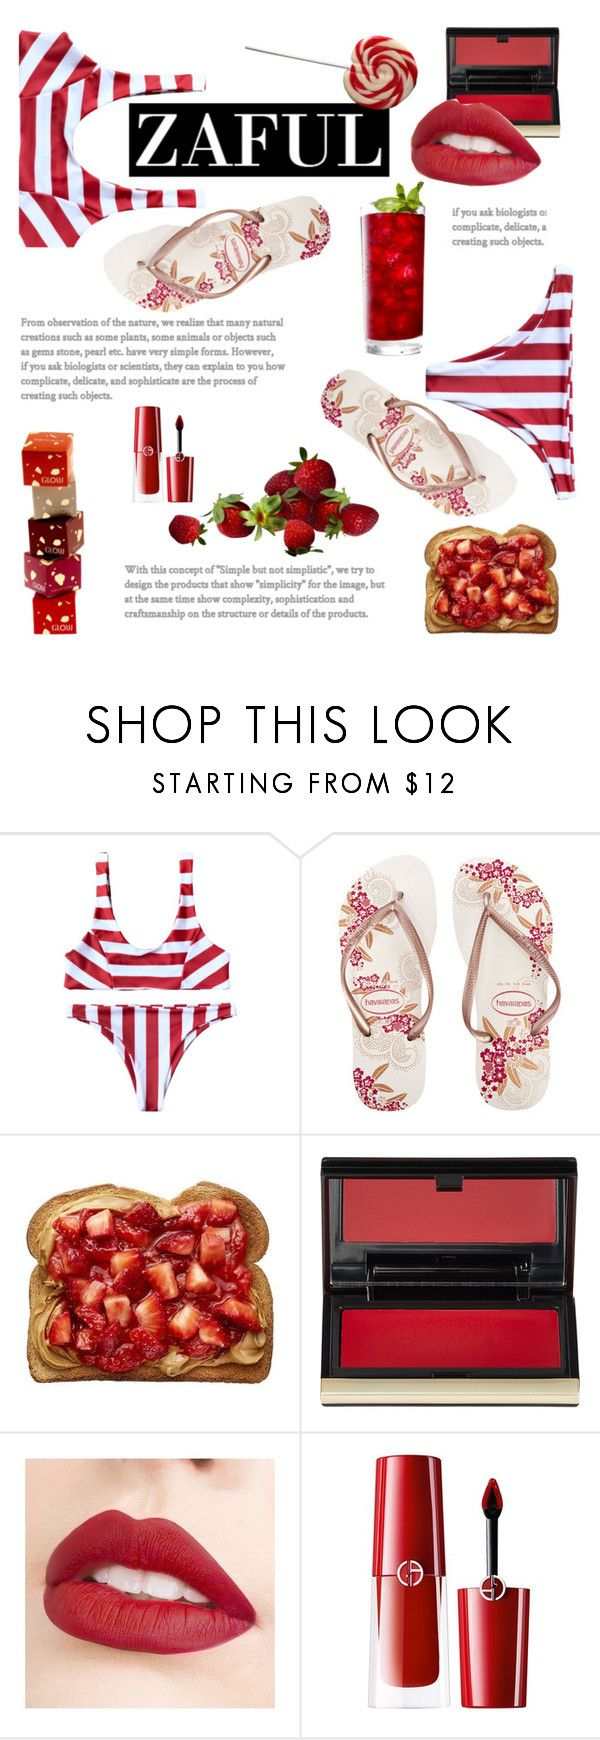 """609"" by fanfanfanfannnn ❤ liked on Polyvore featuring Havaianas, Kevyn Aucoin, Jouer, Giorgio Armani, aniversary and zaful"